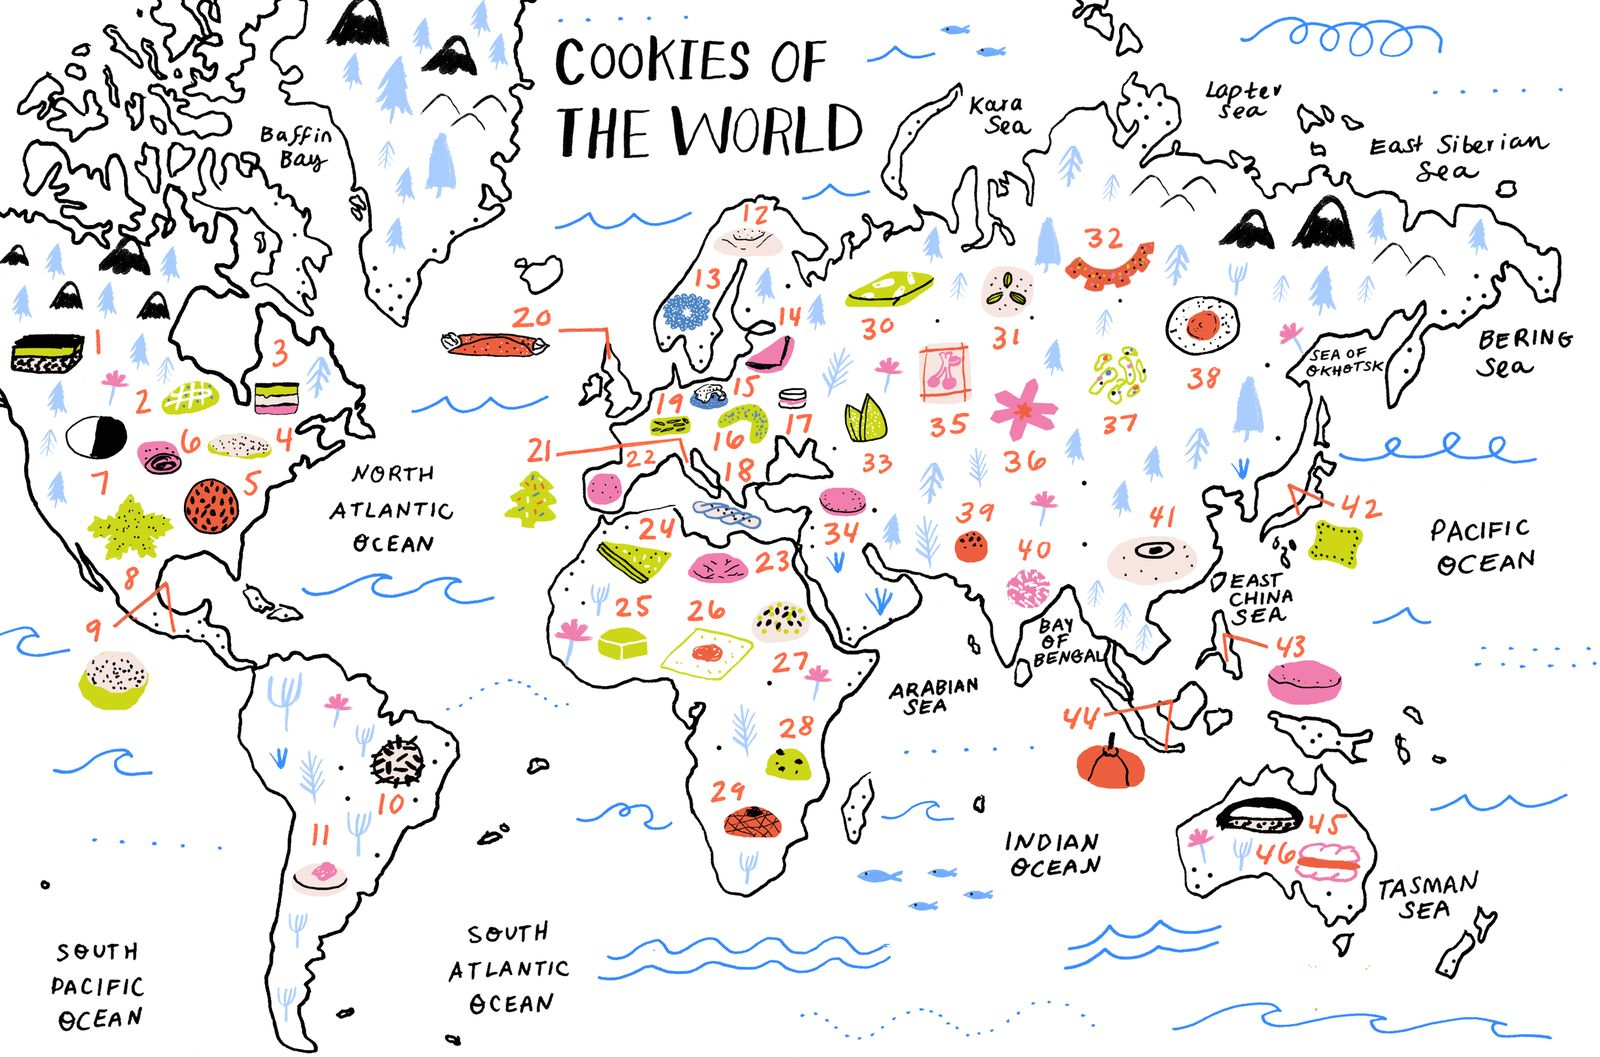 Cookies Of The World By Food52 26 Nigerian Coconut